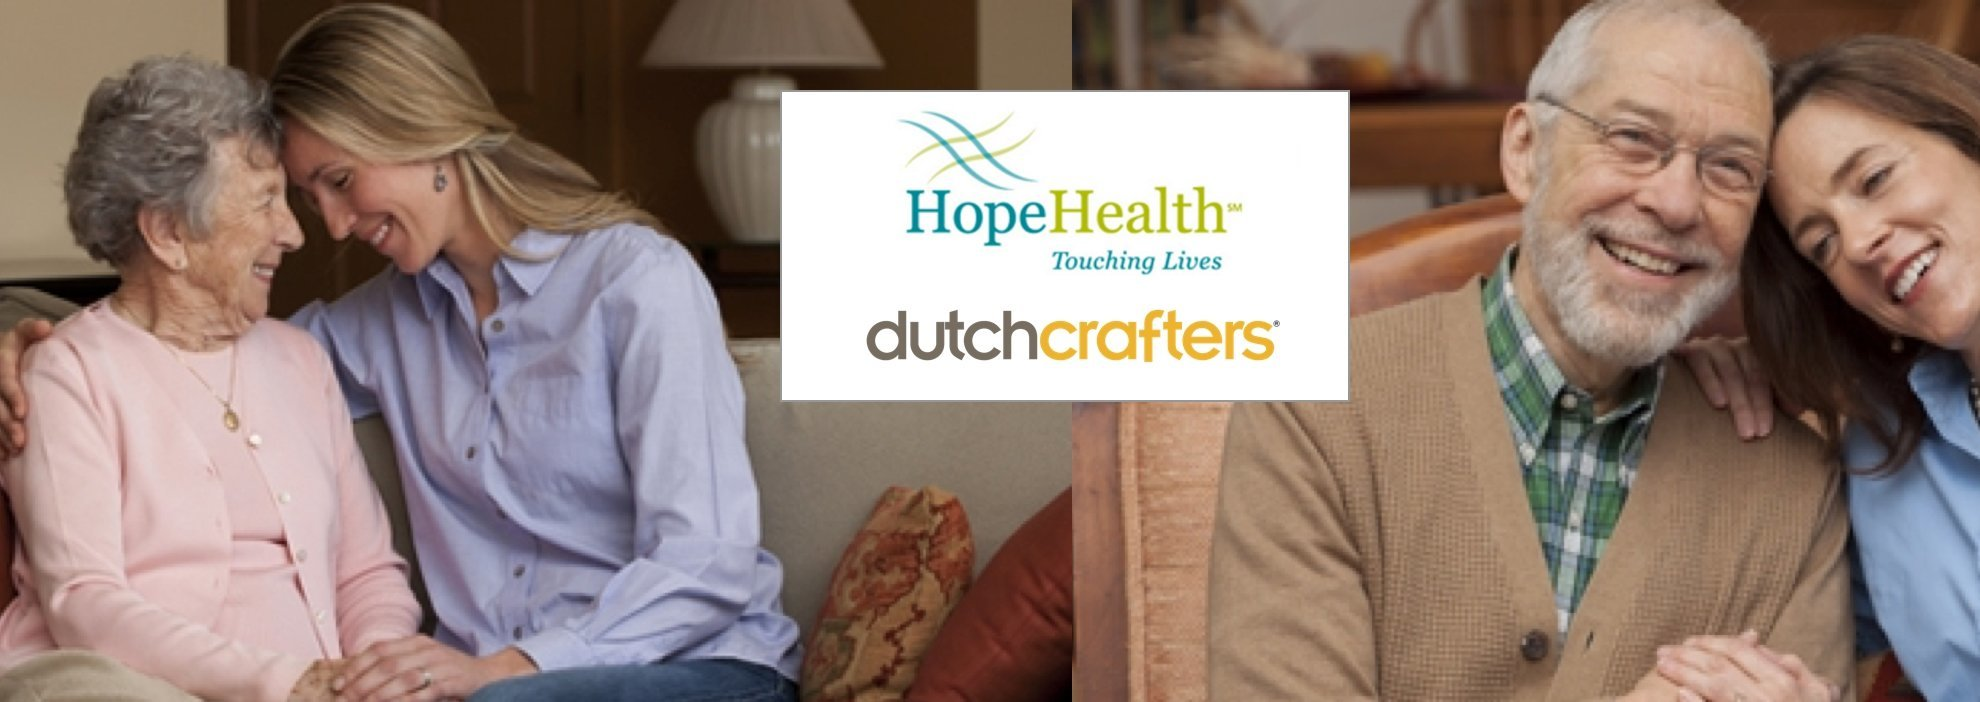 hospice business customer